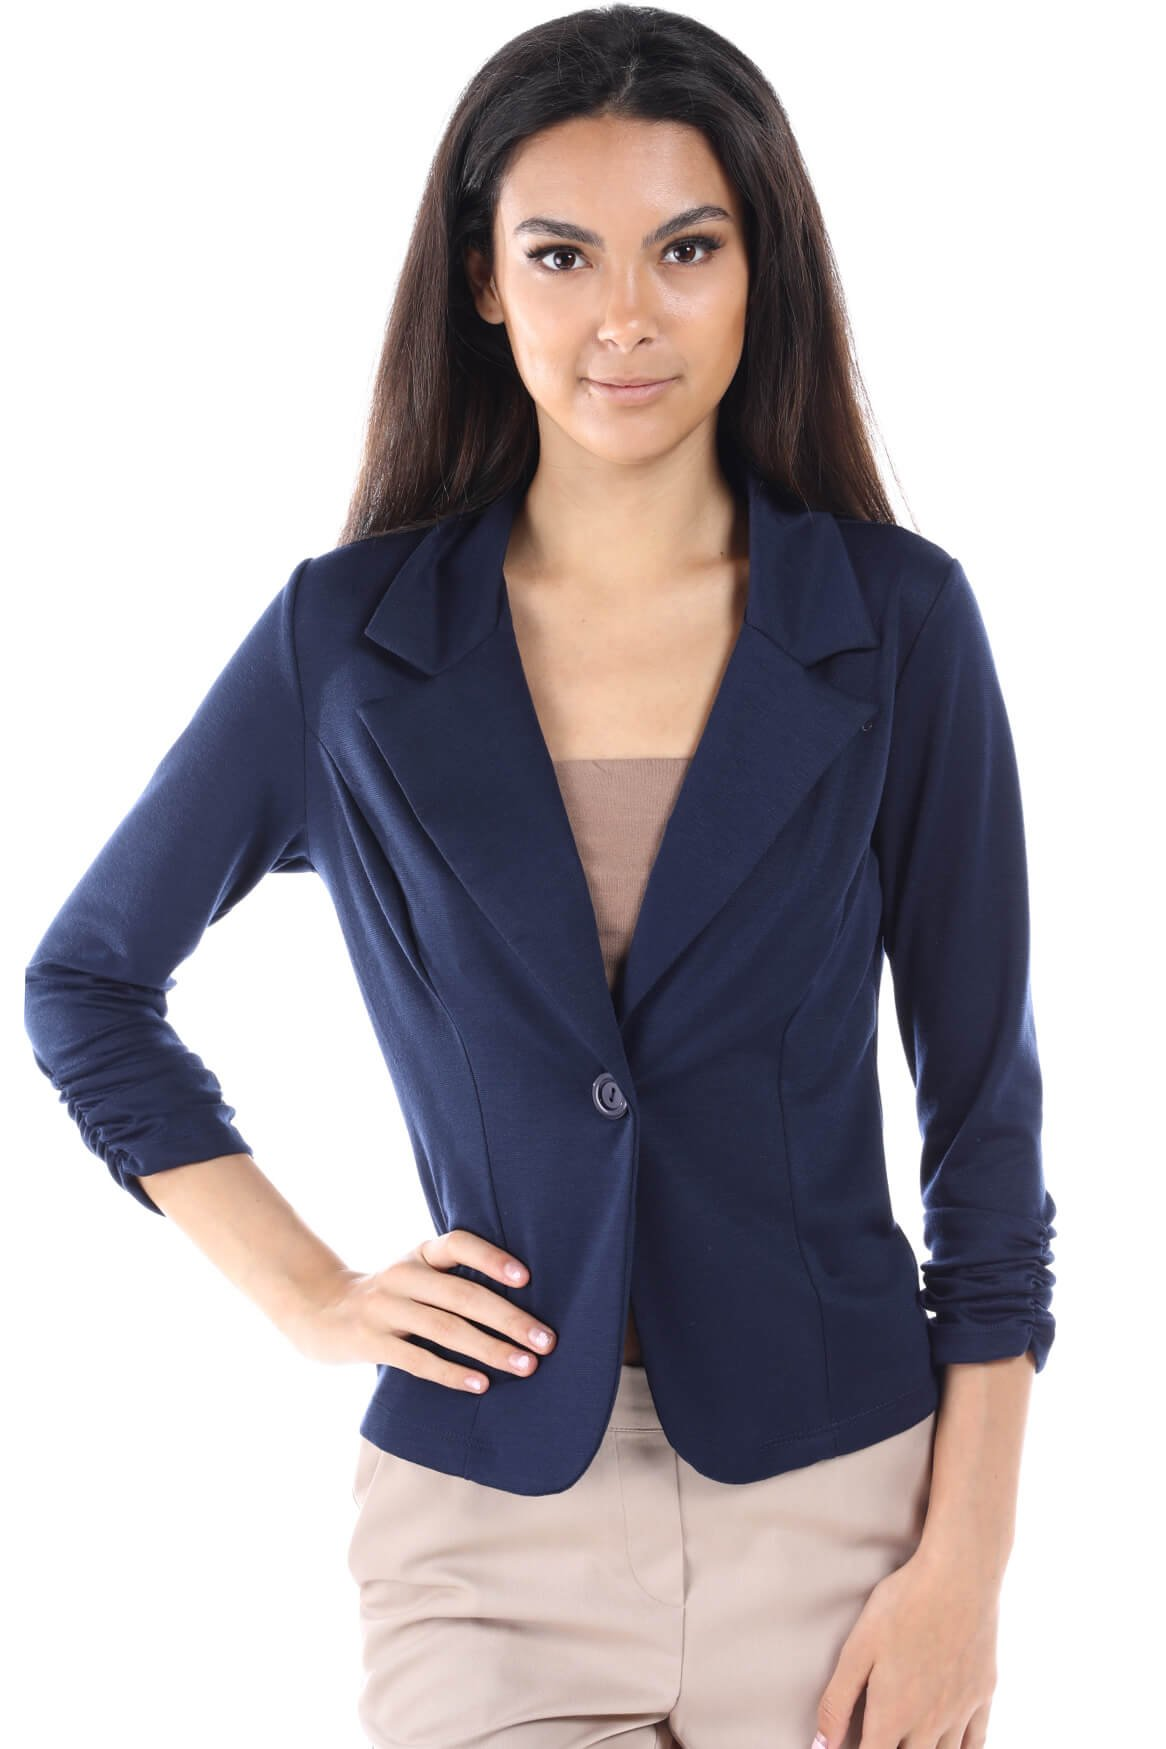 Women's One Button Office Knit Blazer Jacket,Made in USA (Small-3XL) (2XL, Navy)